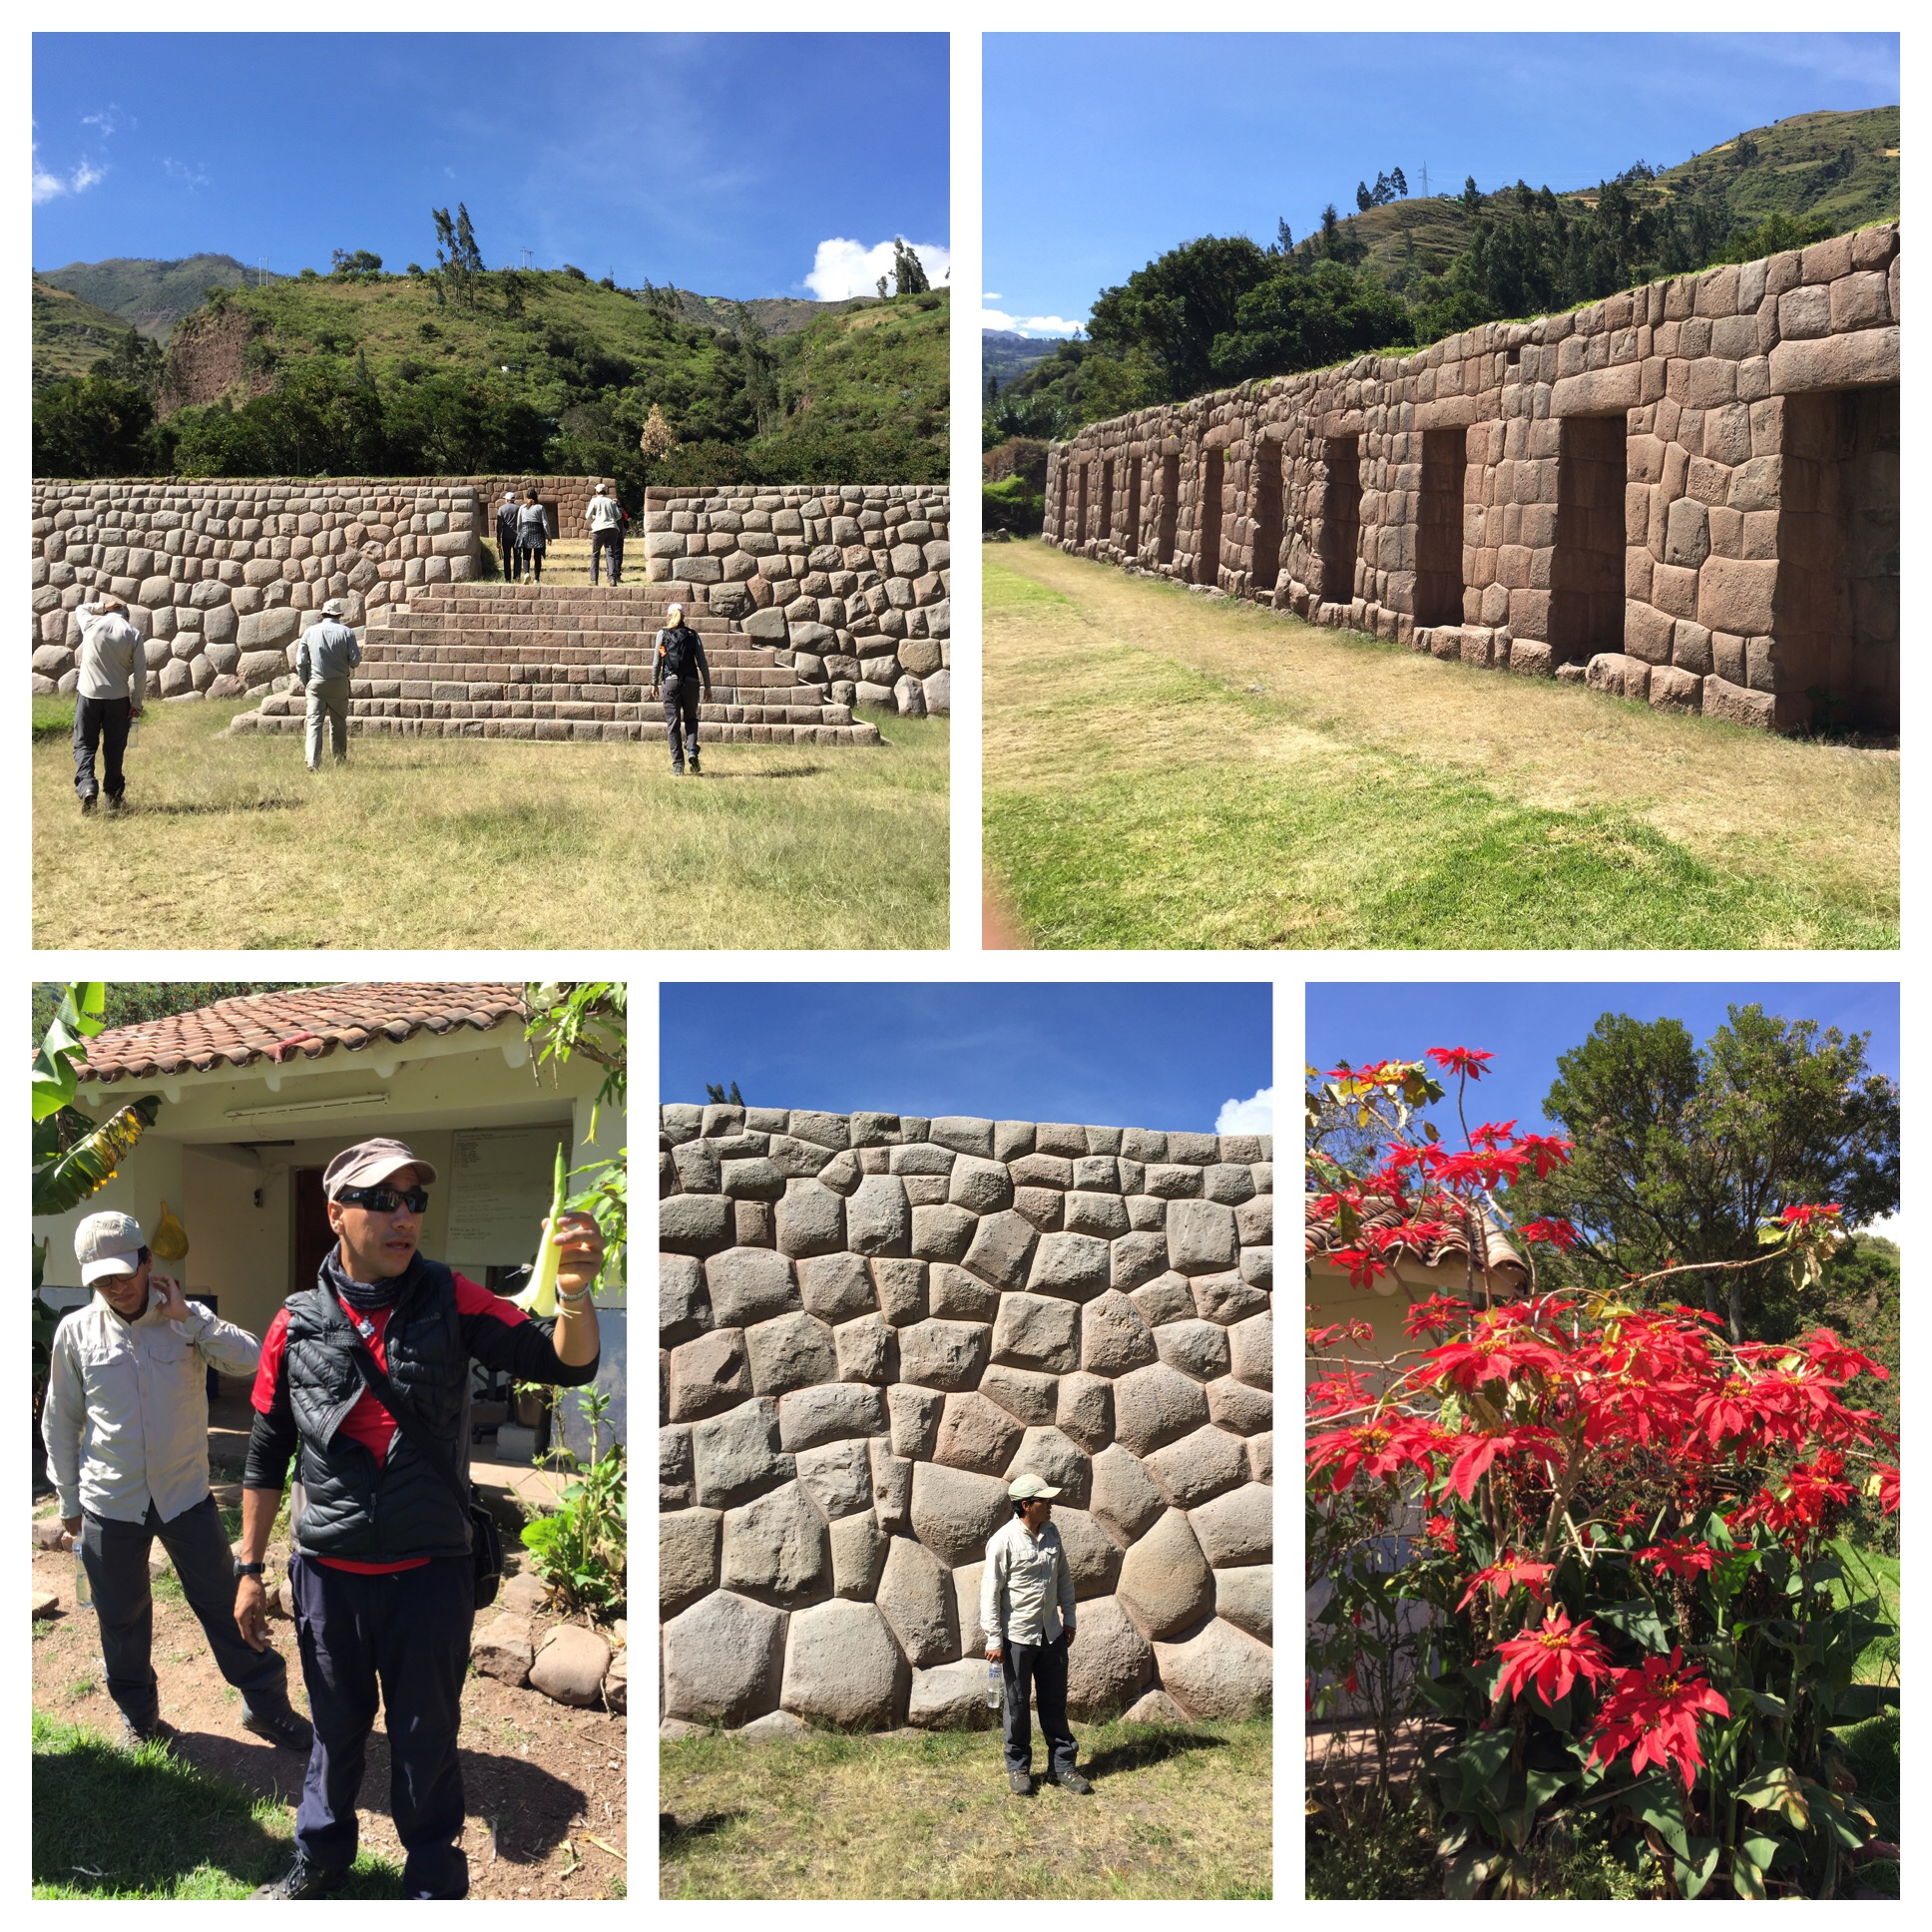 Bottom left picture is of our guides Aly and Berto. Bottom right is a poinsettia bush - huge flowers!